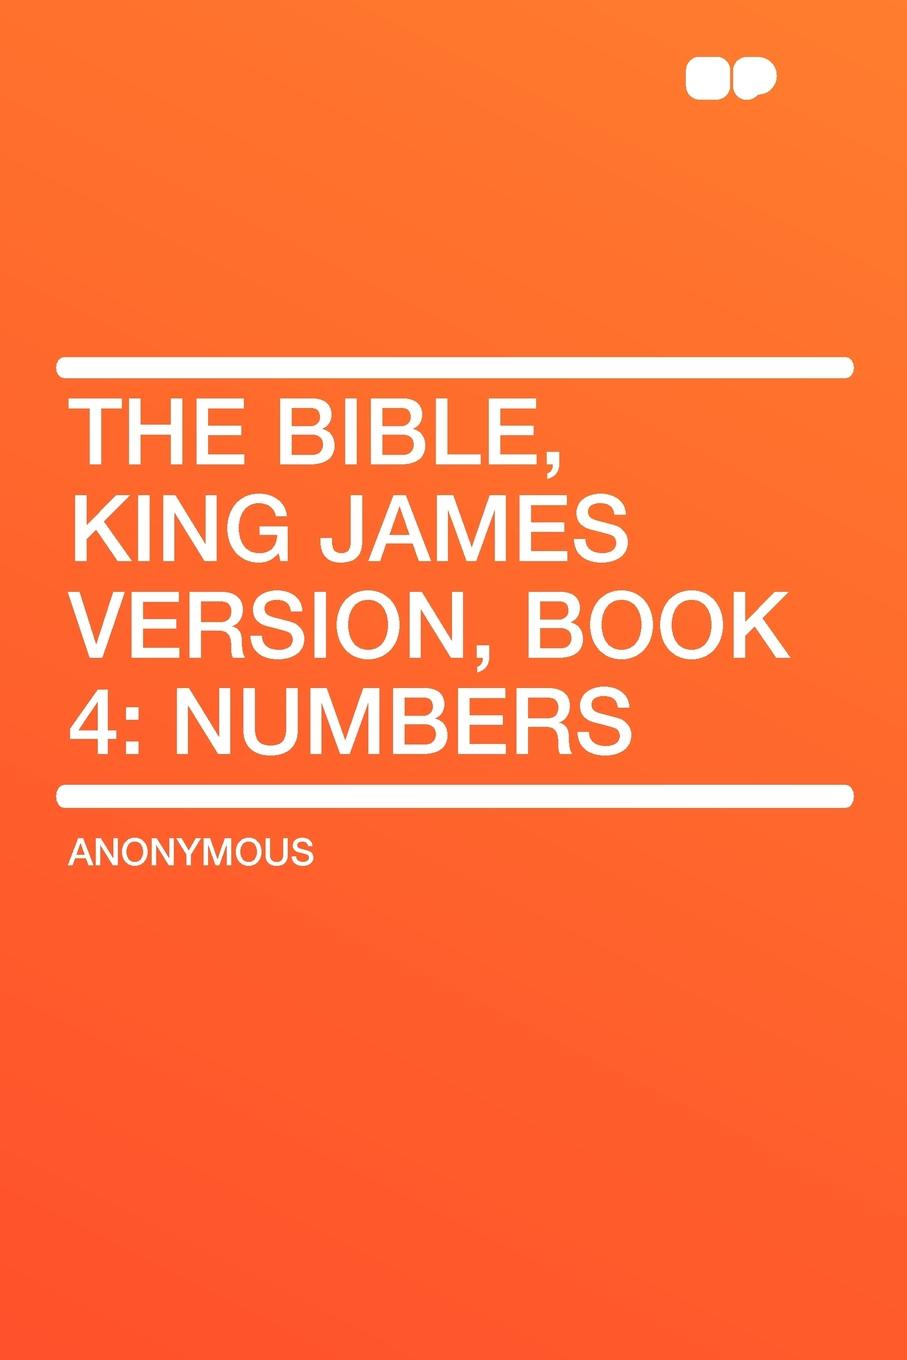 The Bible, King James version, Book 4. Numbers james russell precision shooting the trapshooter s bible